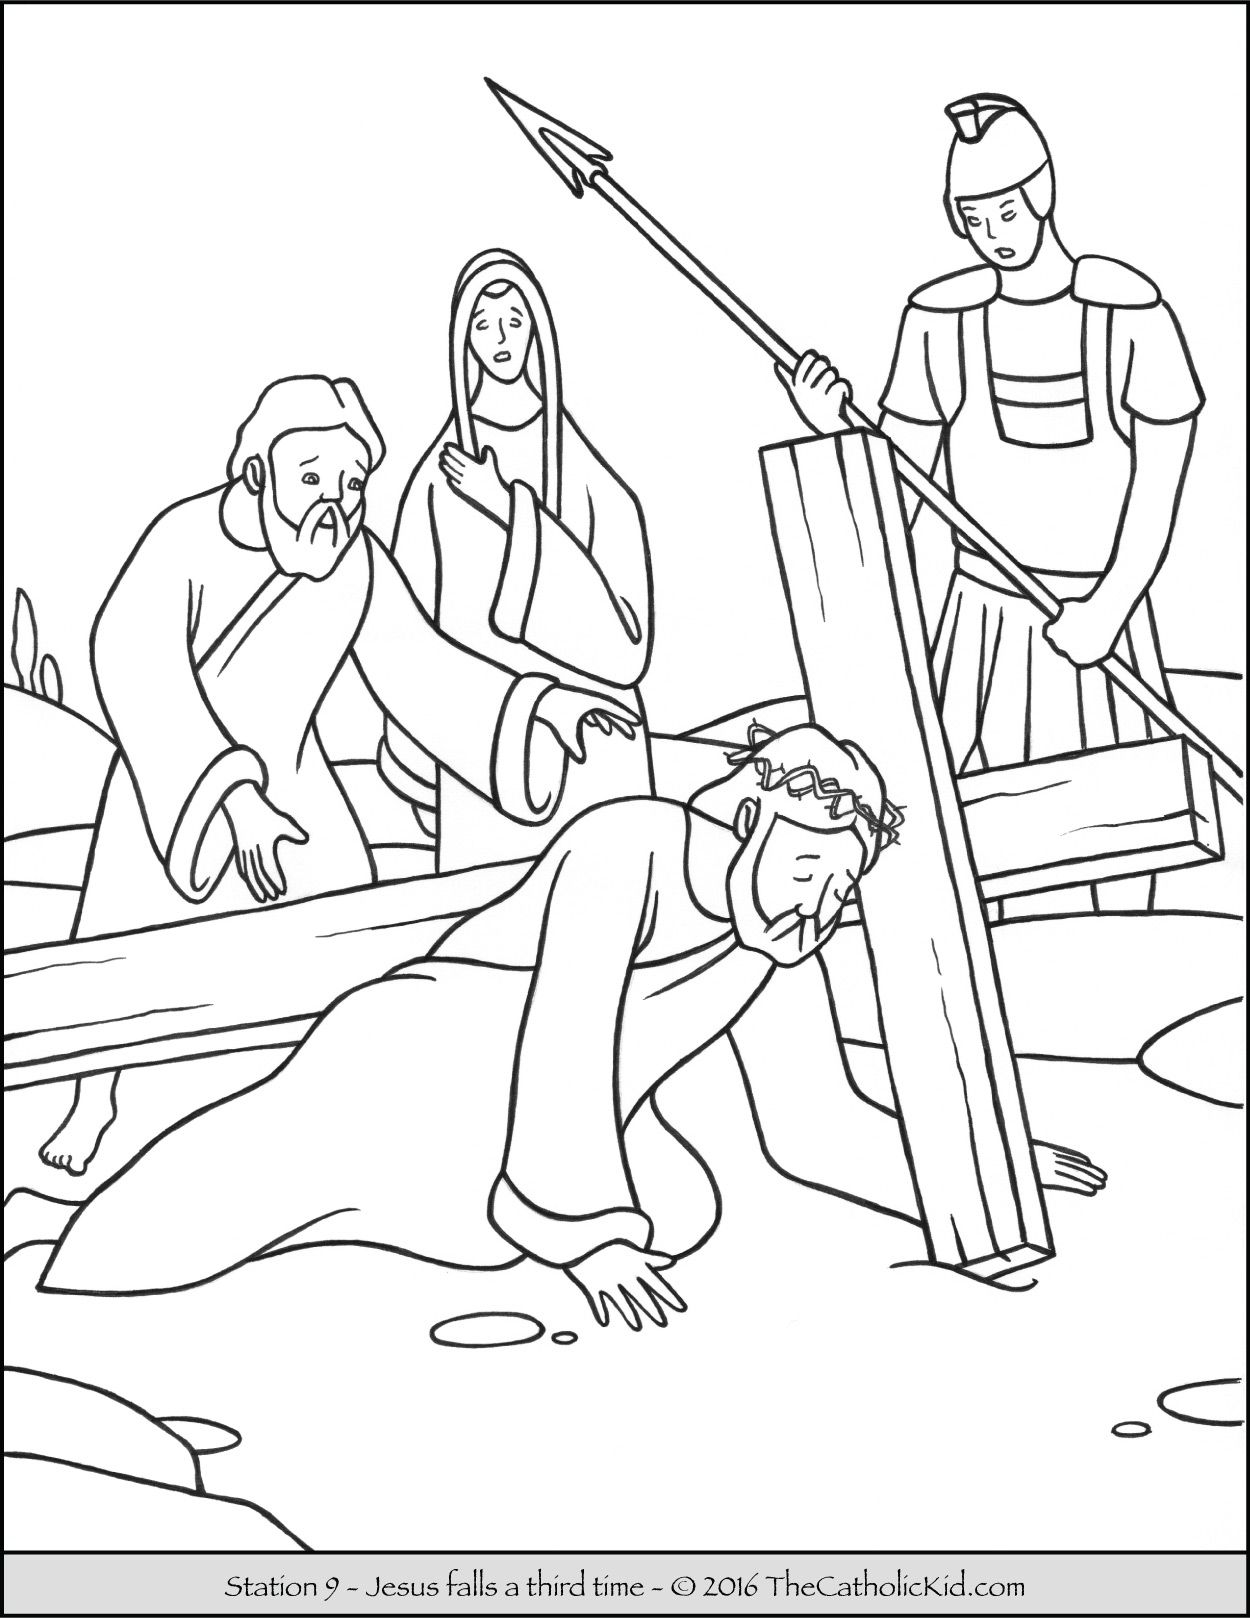 Stations of the Cross Coloring Pages 9 - Jesus falls a third time ...